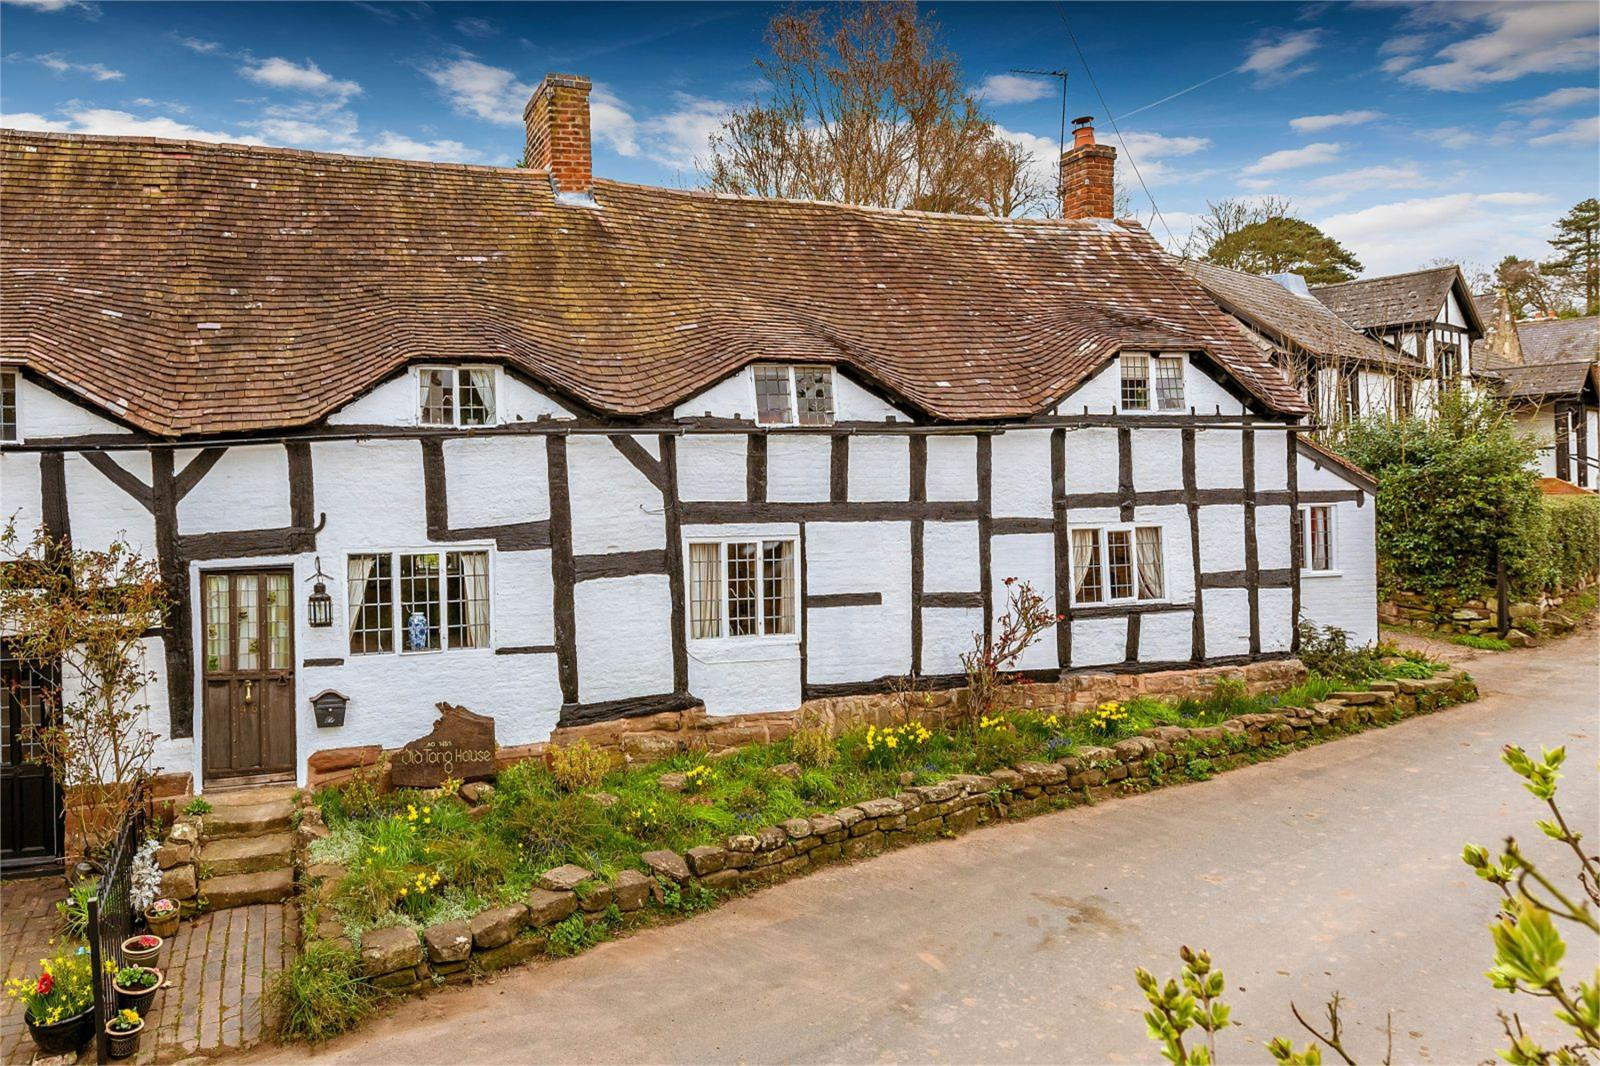 3 Bedrooms Semi Detached House for sale in Old Tong House, Tong, Shifnal, Shropshire, TF11